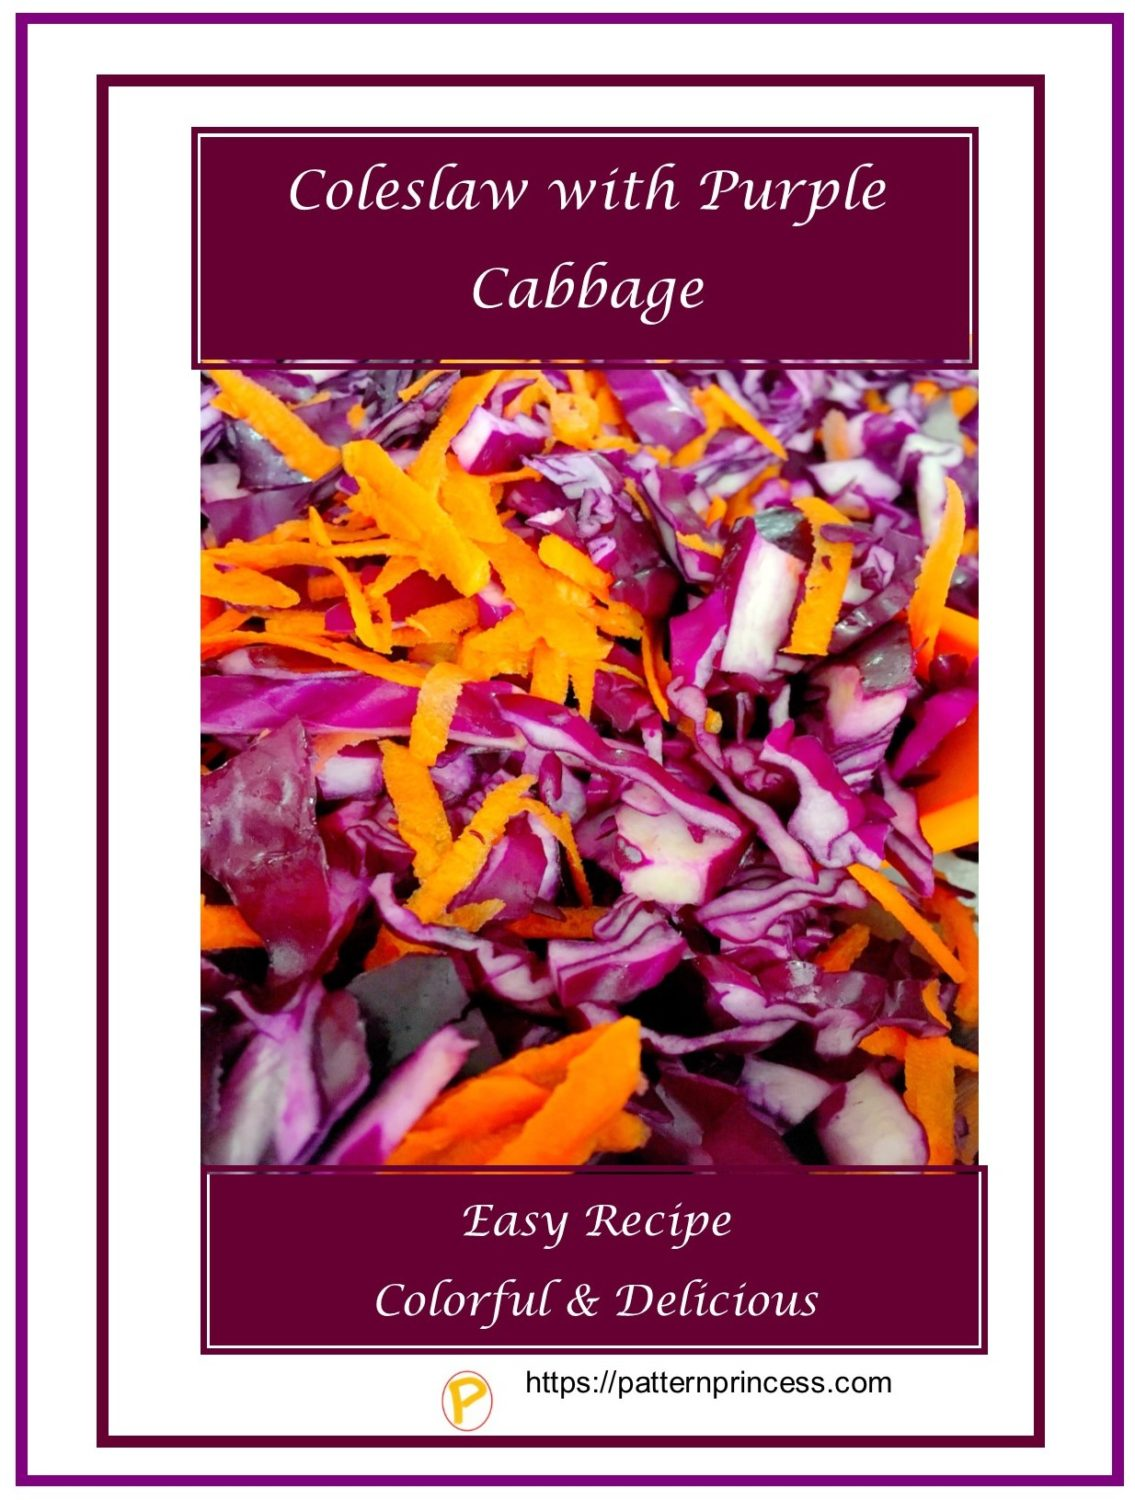 Coleslaw with Purple Cabbage 1